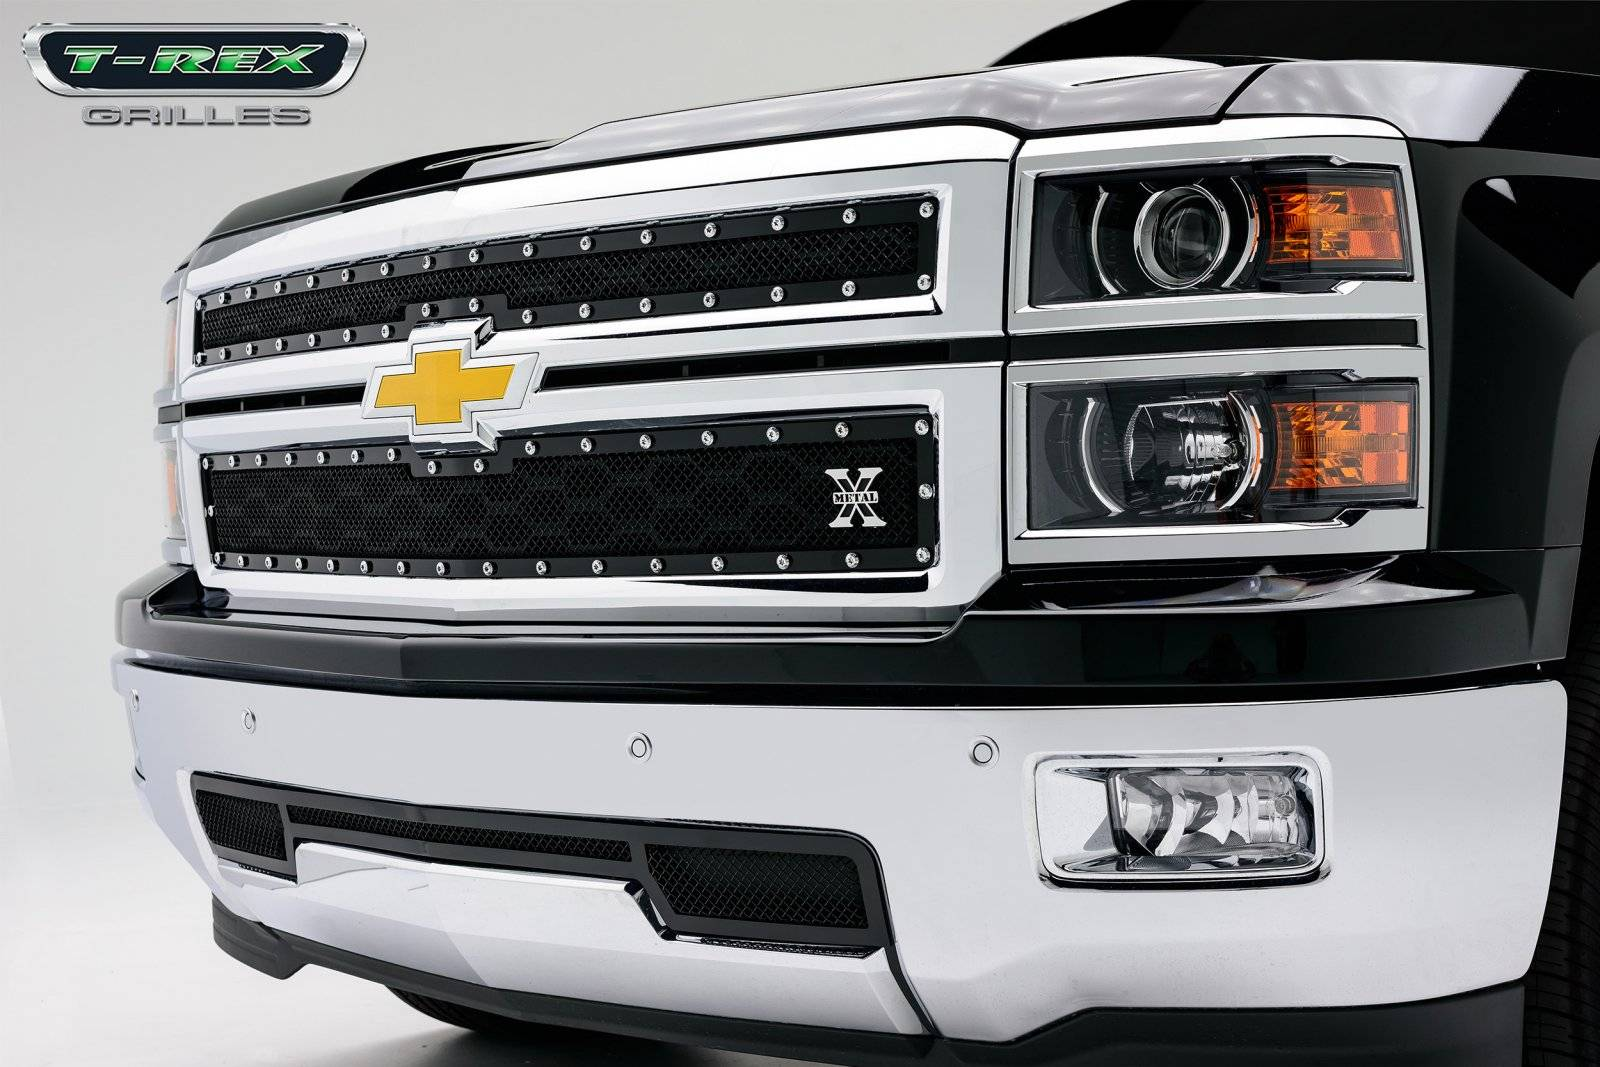 T-REX Chevrolet Silverado Z71 X-METAL Series - Studded Main Grille - ALL Black - 2 Pc Style - Pt # 6711201